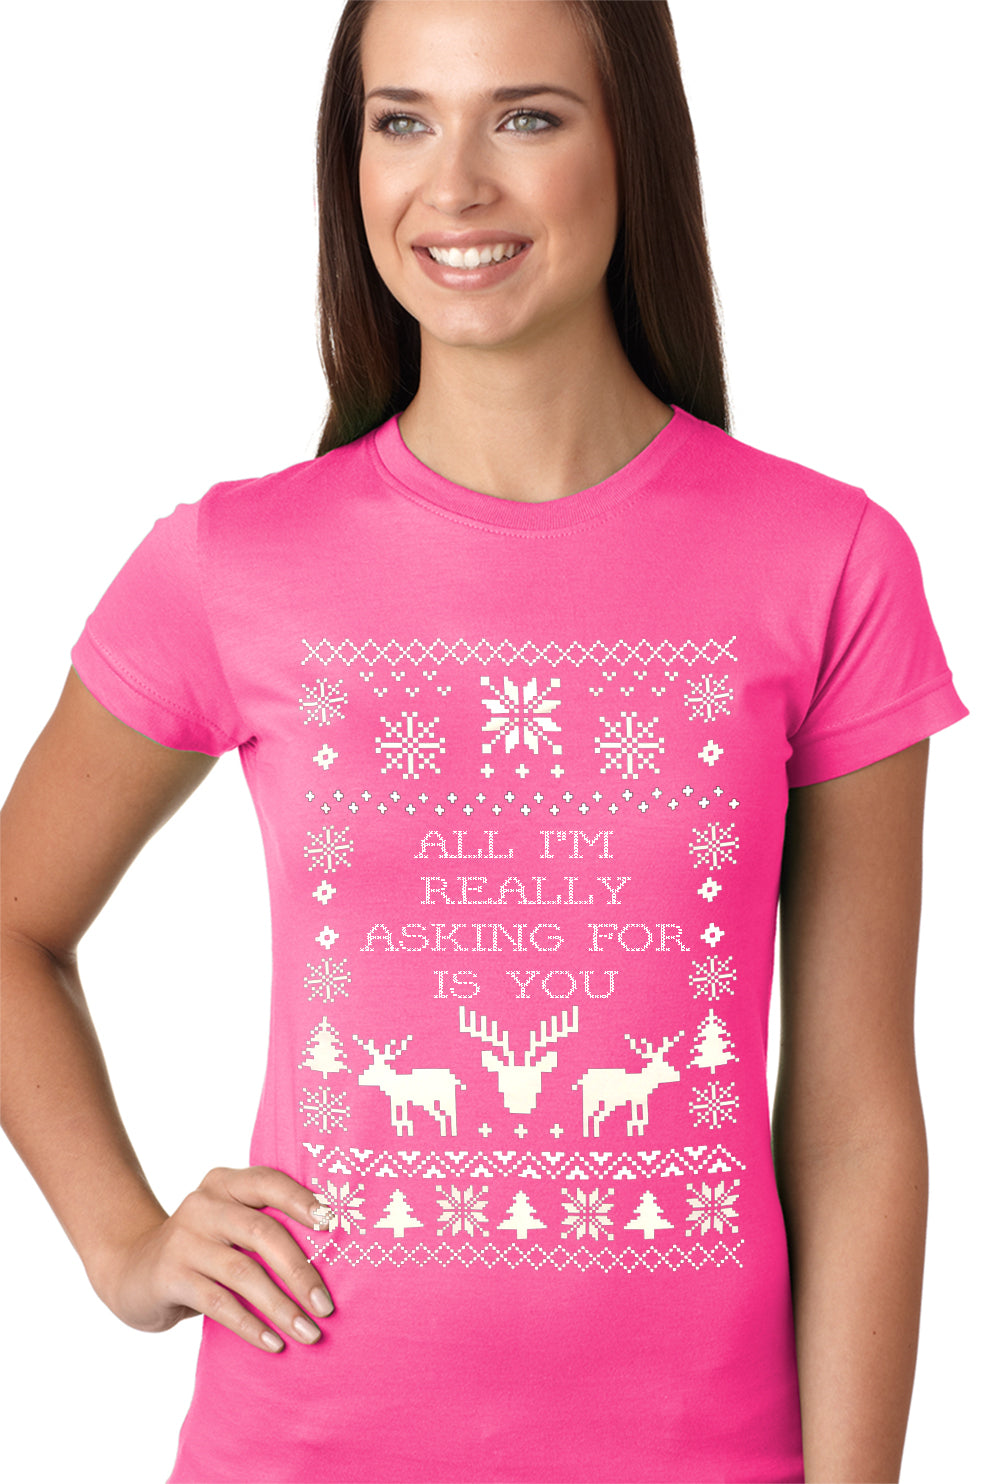 All I'm Really Asking For Is You Ugly Christmas Girls T-shirt Hot Pink